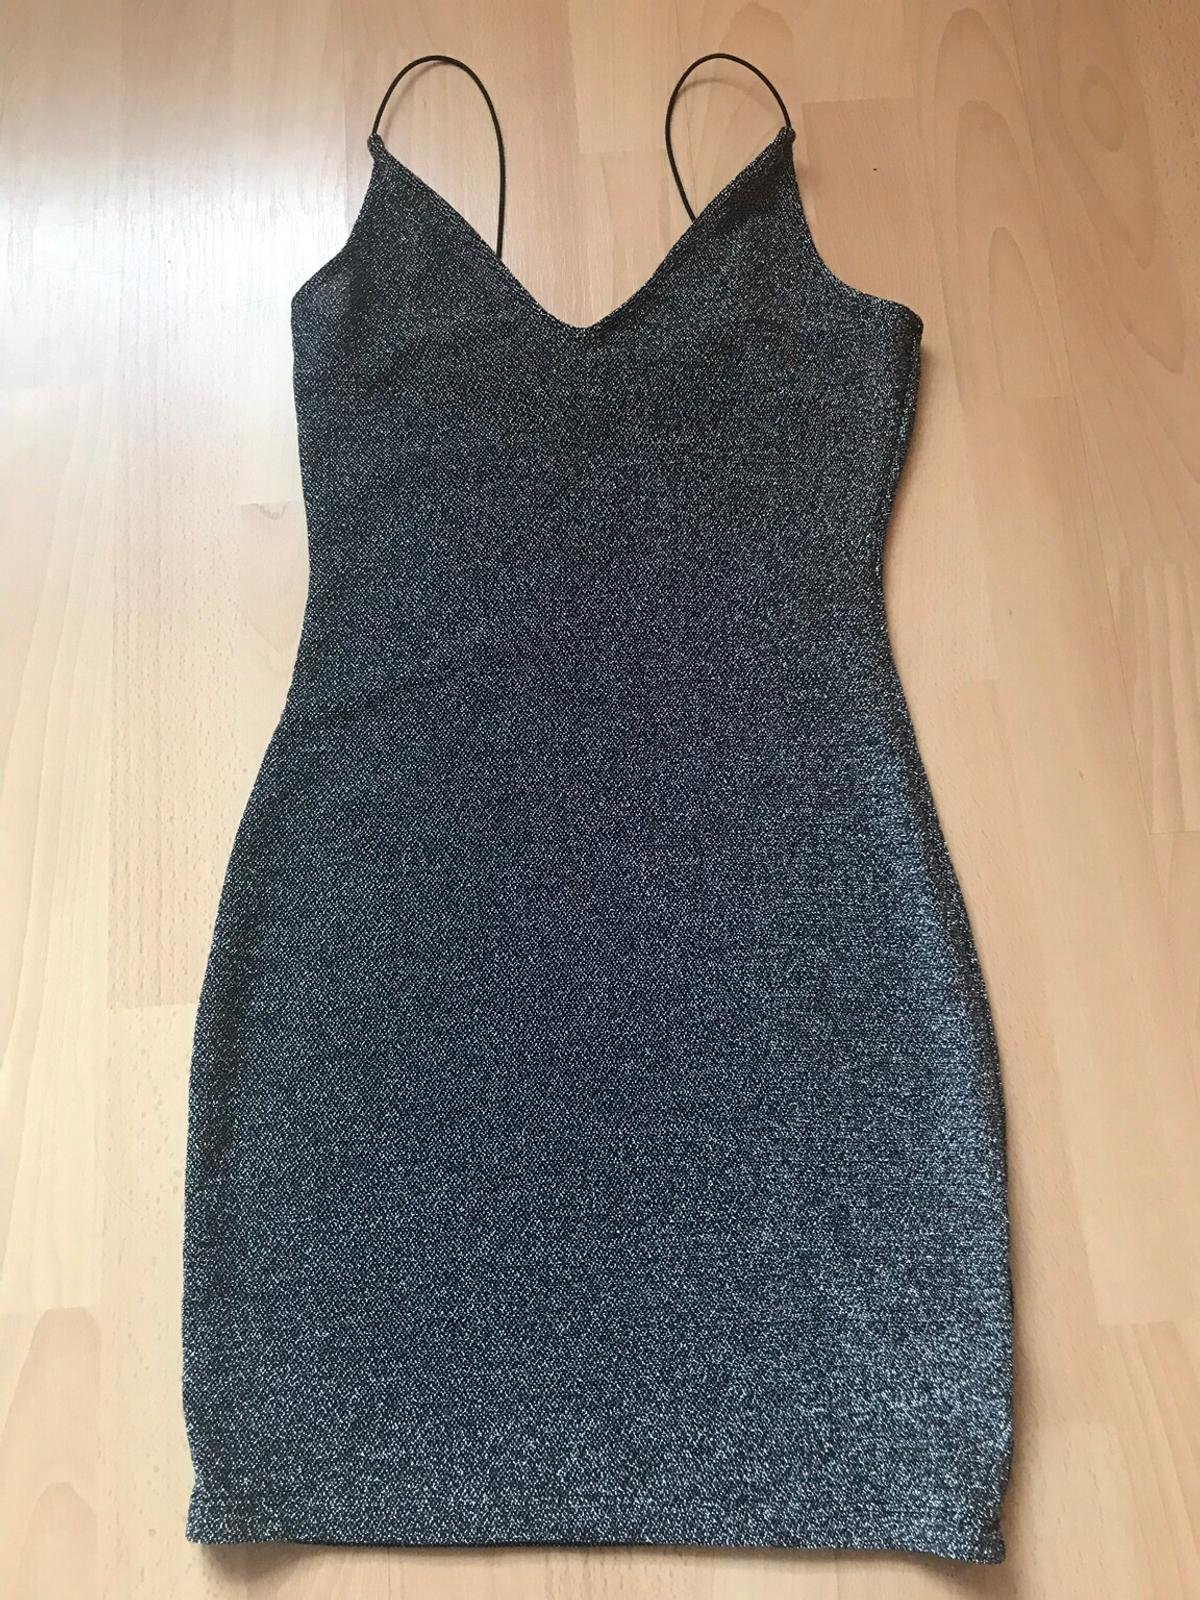 Kurzes Glitzer Kleid in XS in 12 Rahlstedt for €12.12 for sale